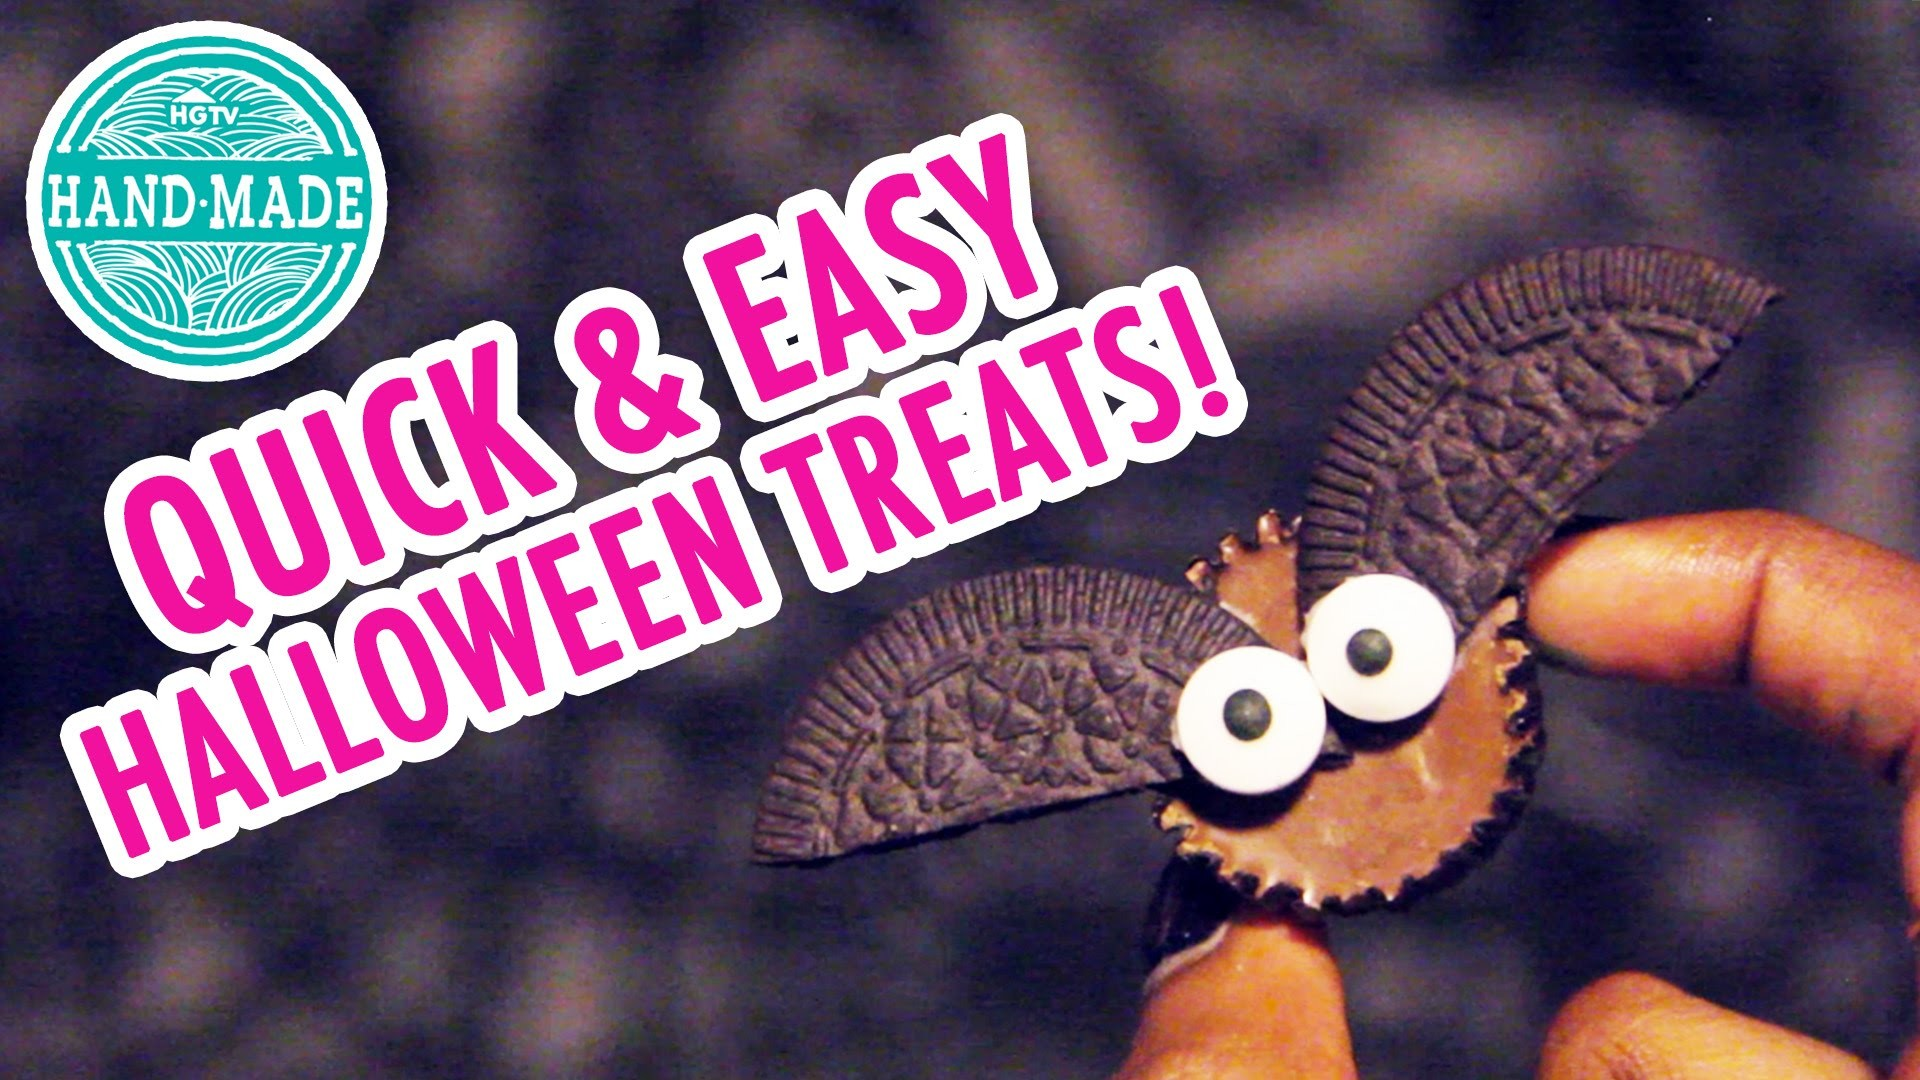 Quick & Easy Halloween Treats - HGTV Handmade